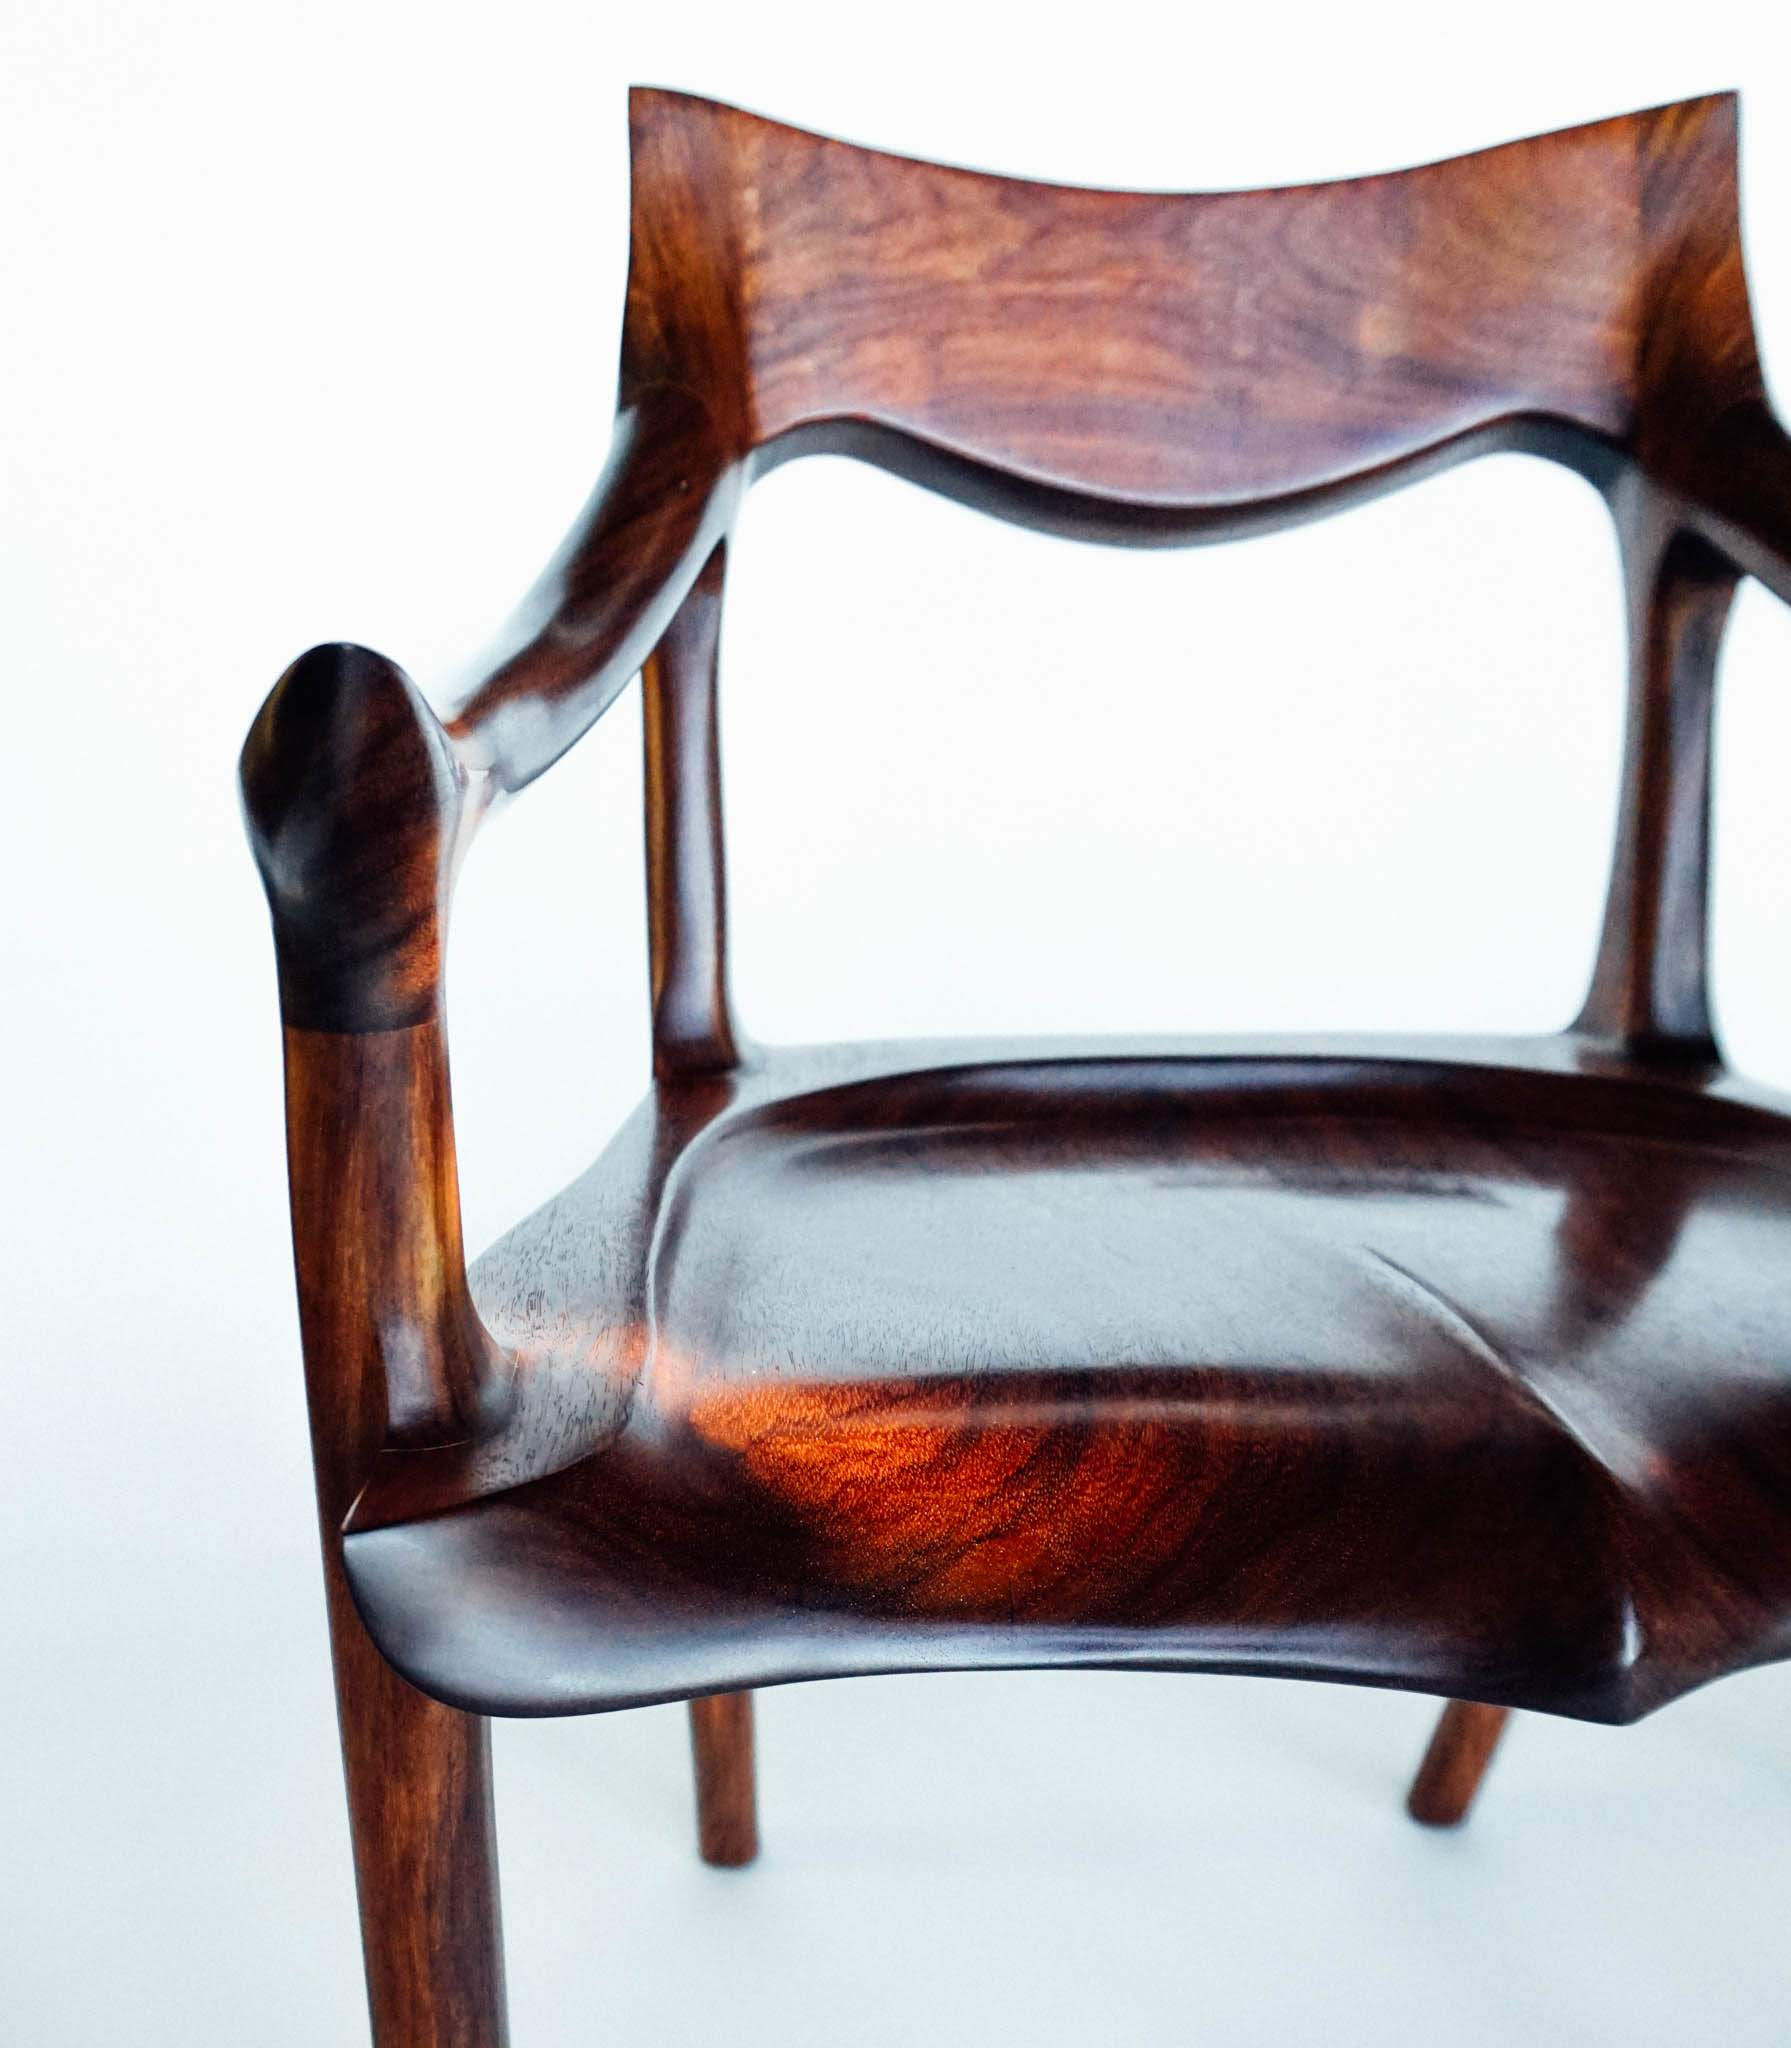 The signature down and outward curve of the arm of this chair makes it unique. It can only be achieved by hand carving.